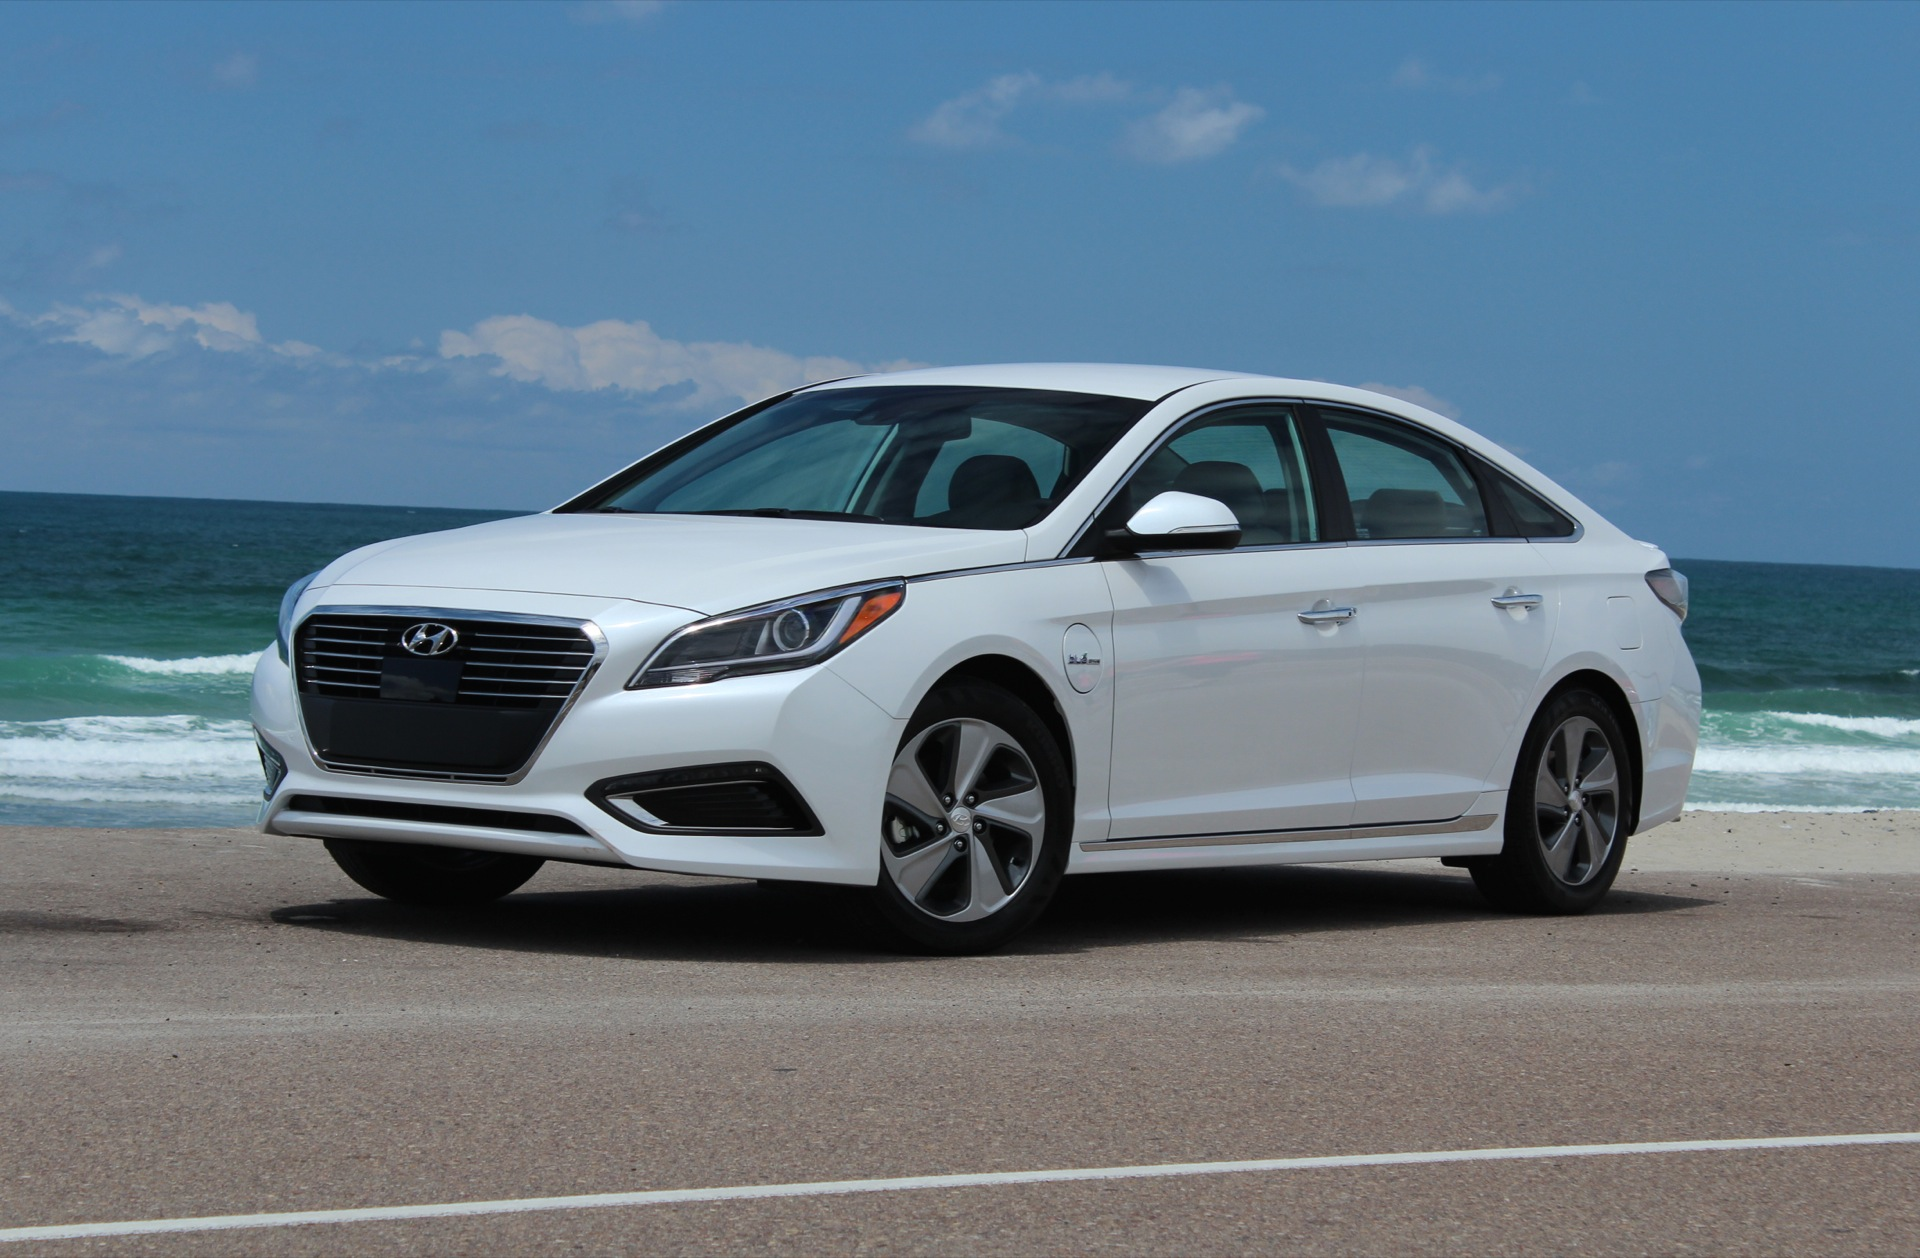 2016 Hyundai Sonata Safety Review And Crash Test Ratings